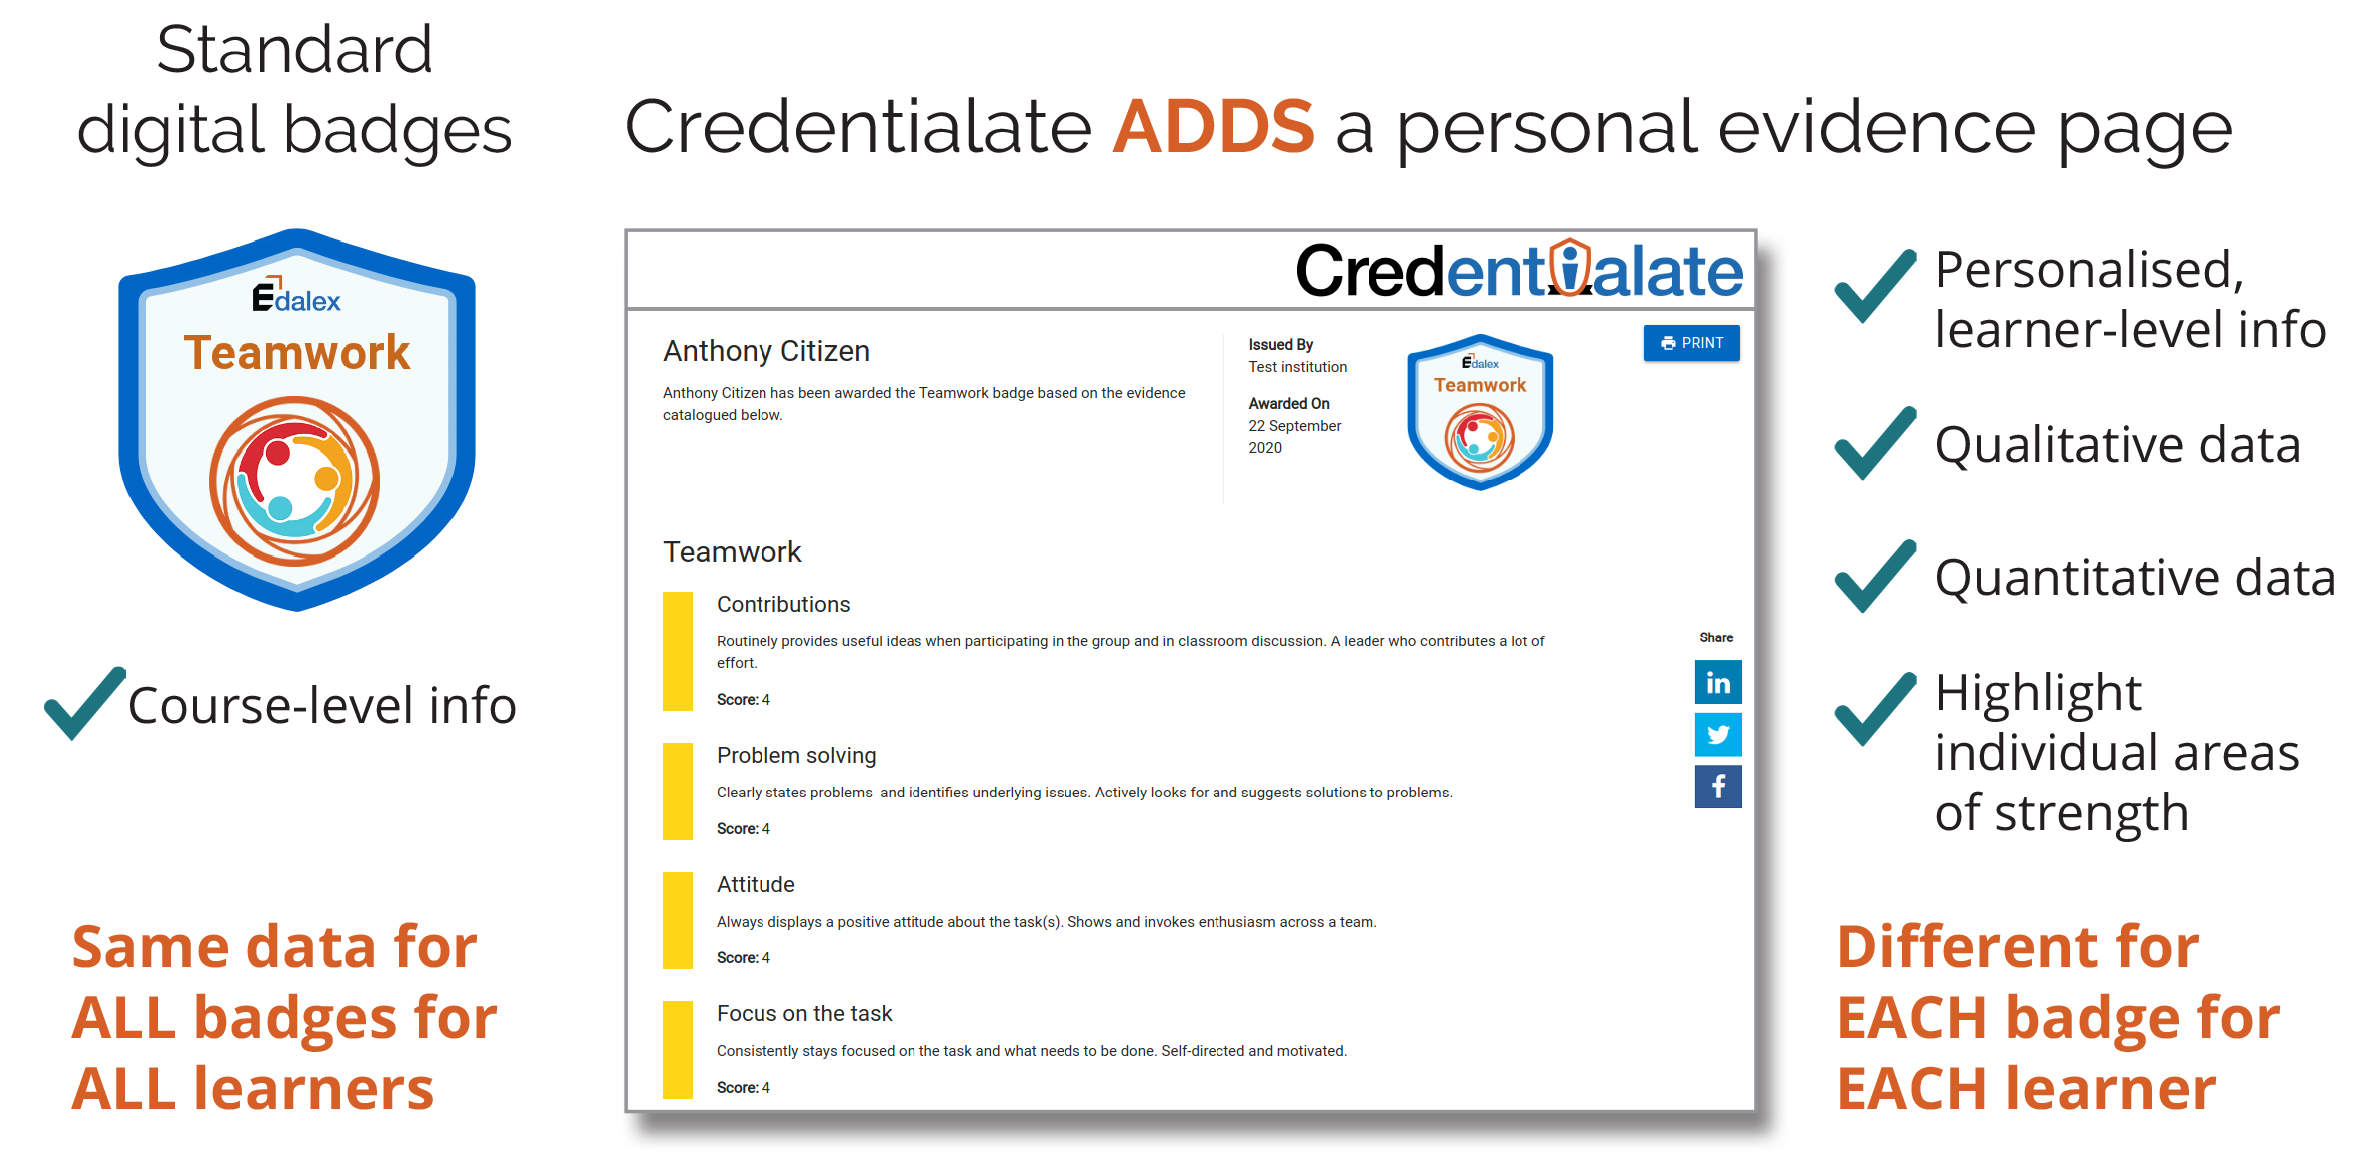 The Credentialate Credential Evidence Platform Difference - Personal Learner-Level Evidence